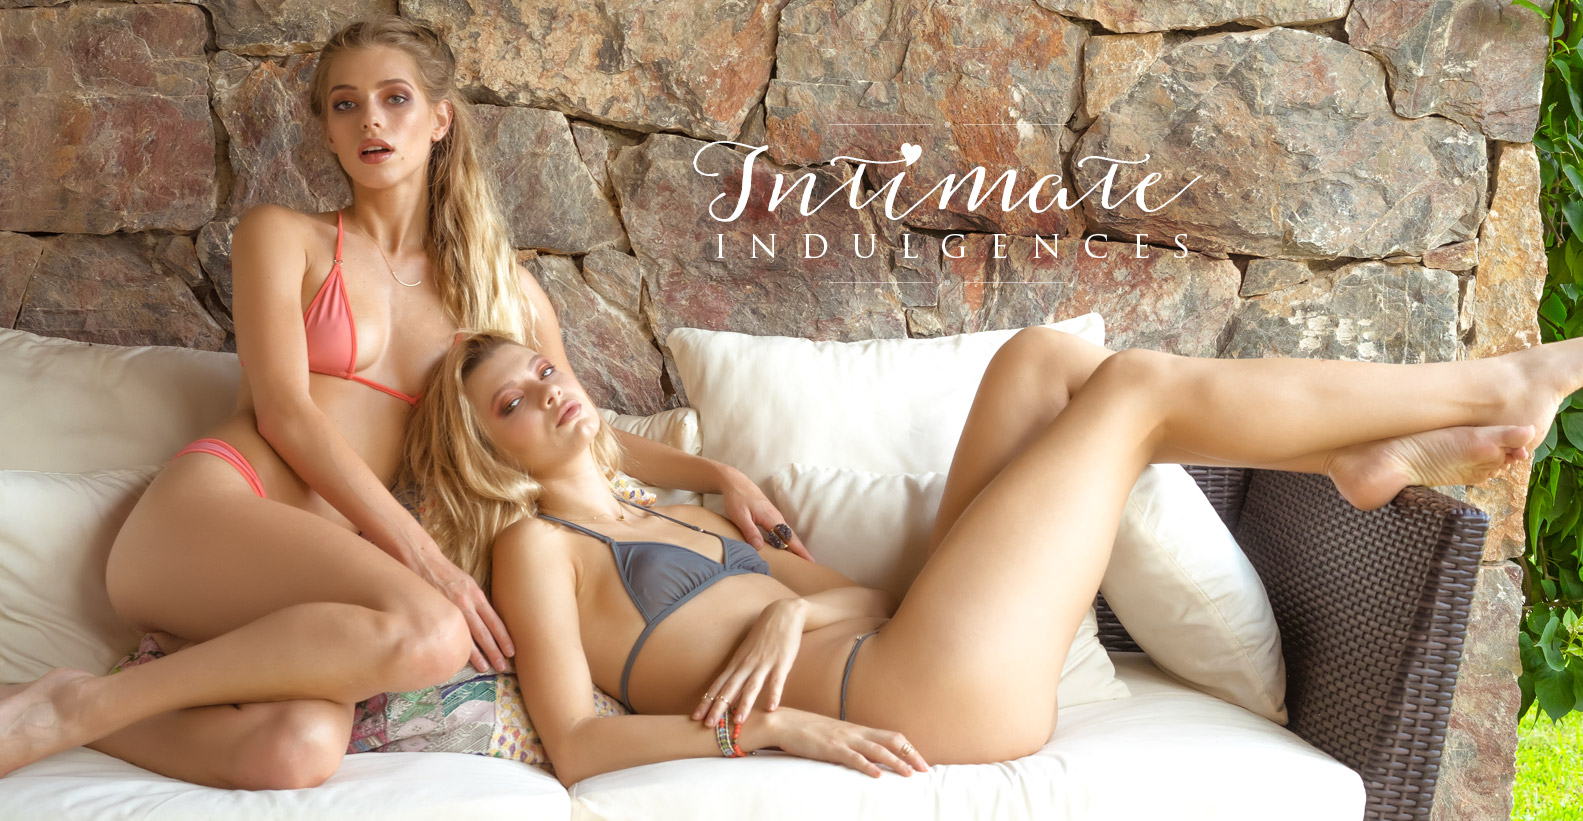 Intimate Indulgences